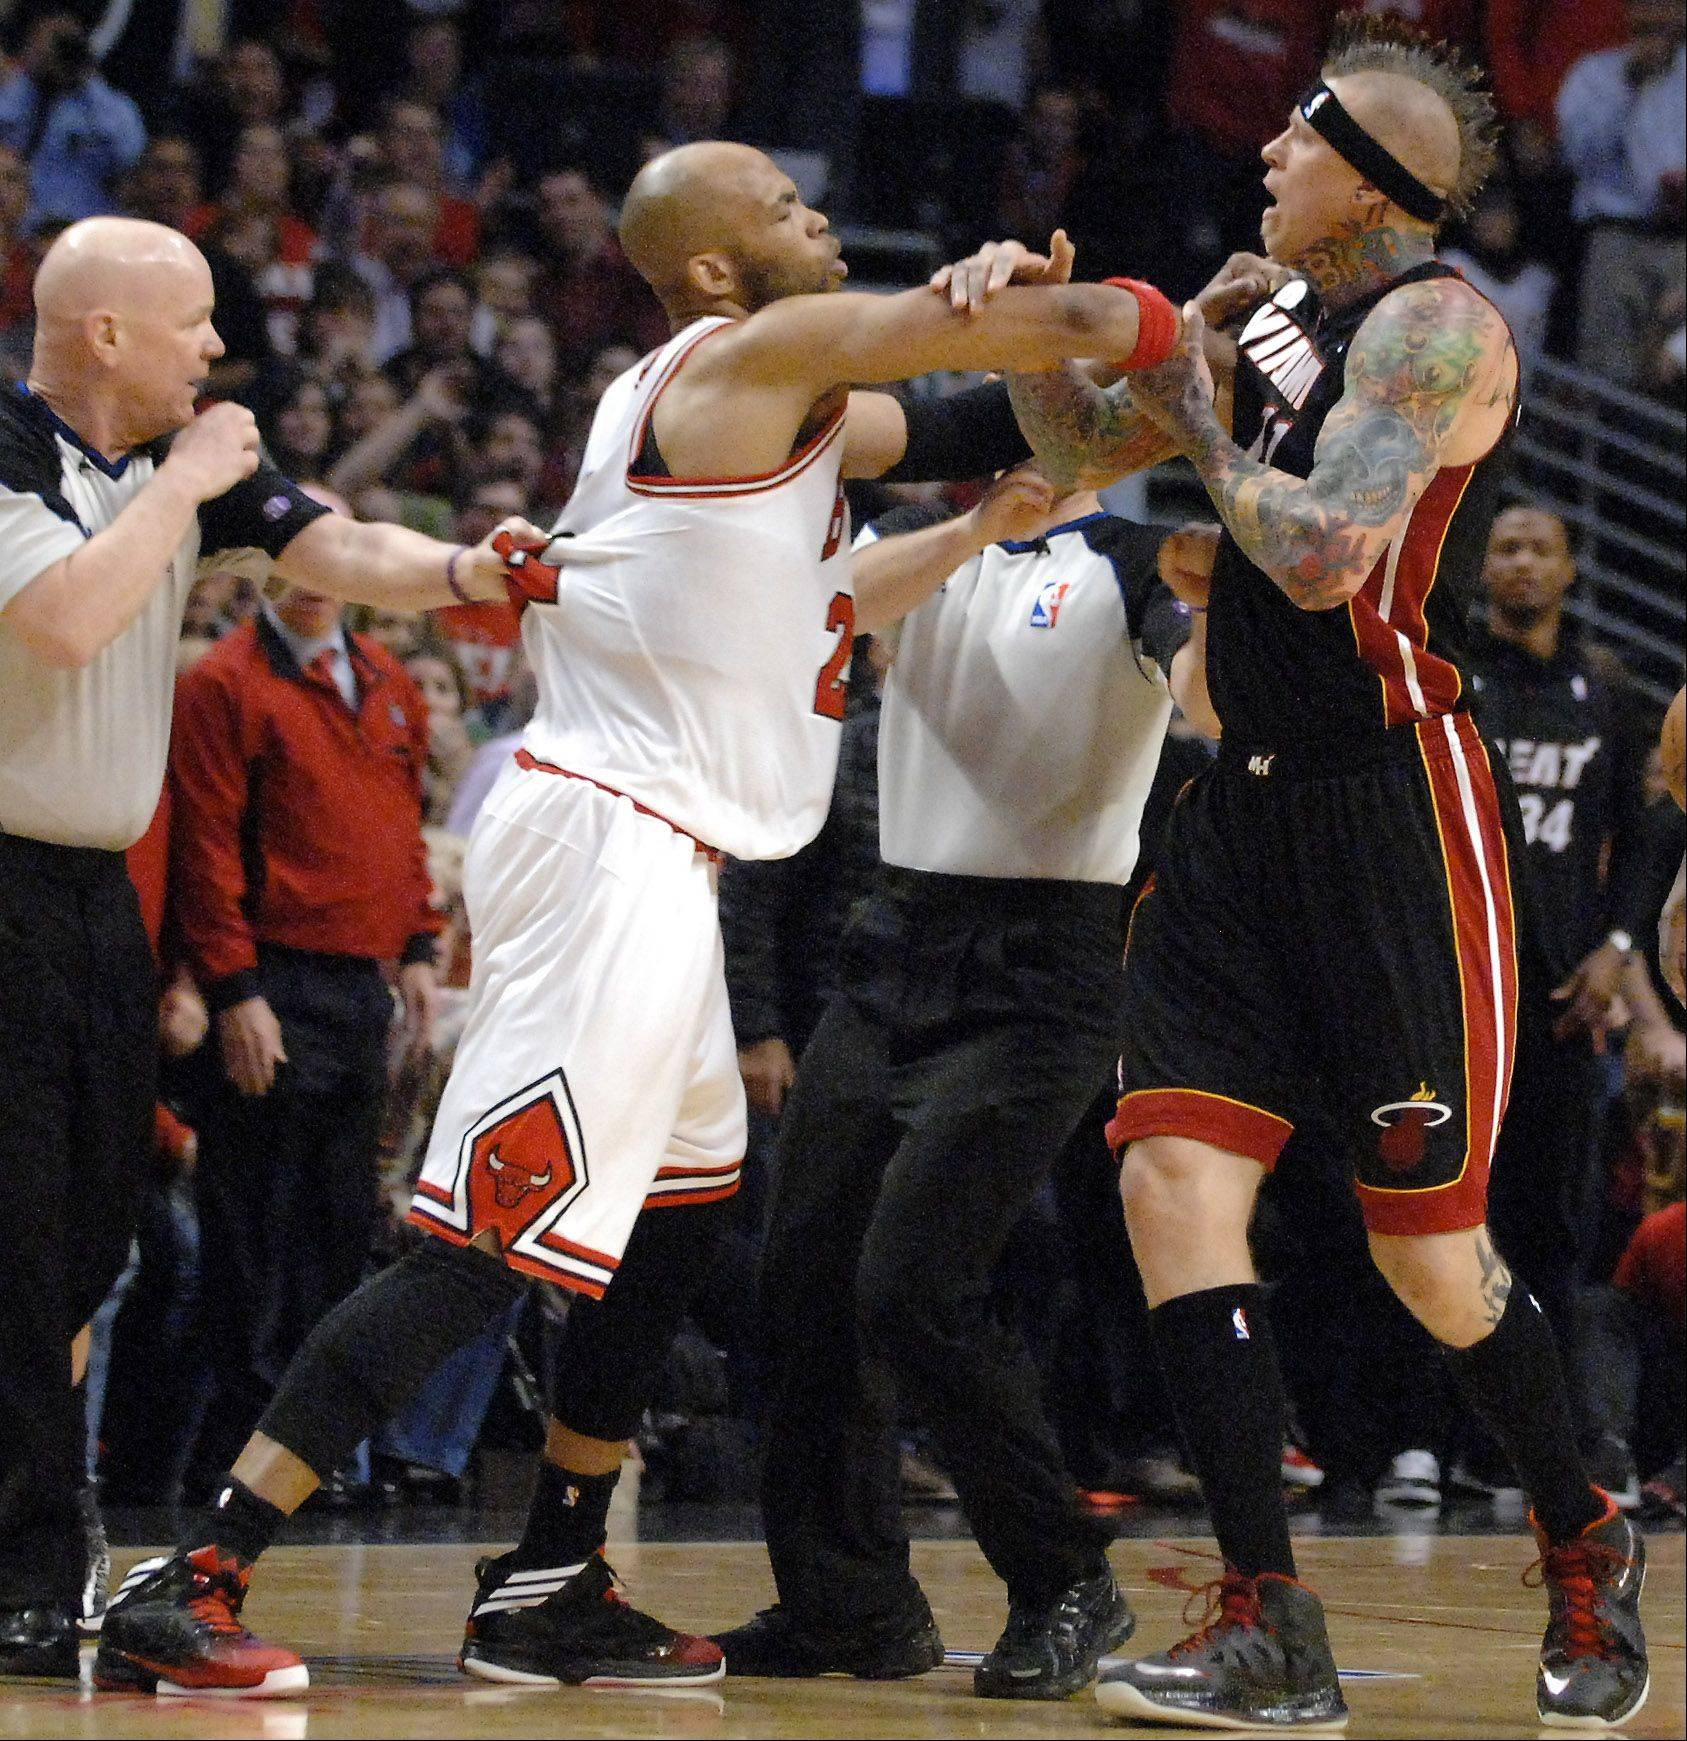 Rick West/rwest@dailyherald.com Chicago Bulls power forward Taj Gibson (22) and Miami Heat power forward Chris Andersen (11) get in a shoving match following Nazr Mohammed foul on LeBron James during game 3 of the NBA Eastern Conference semifinals at the United Center in Chicago Friday.